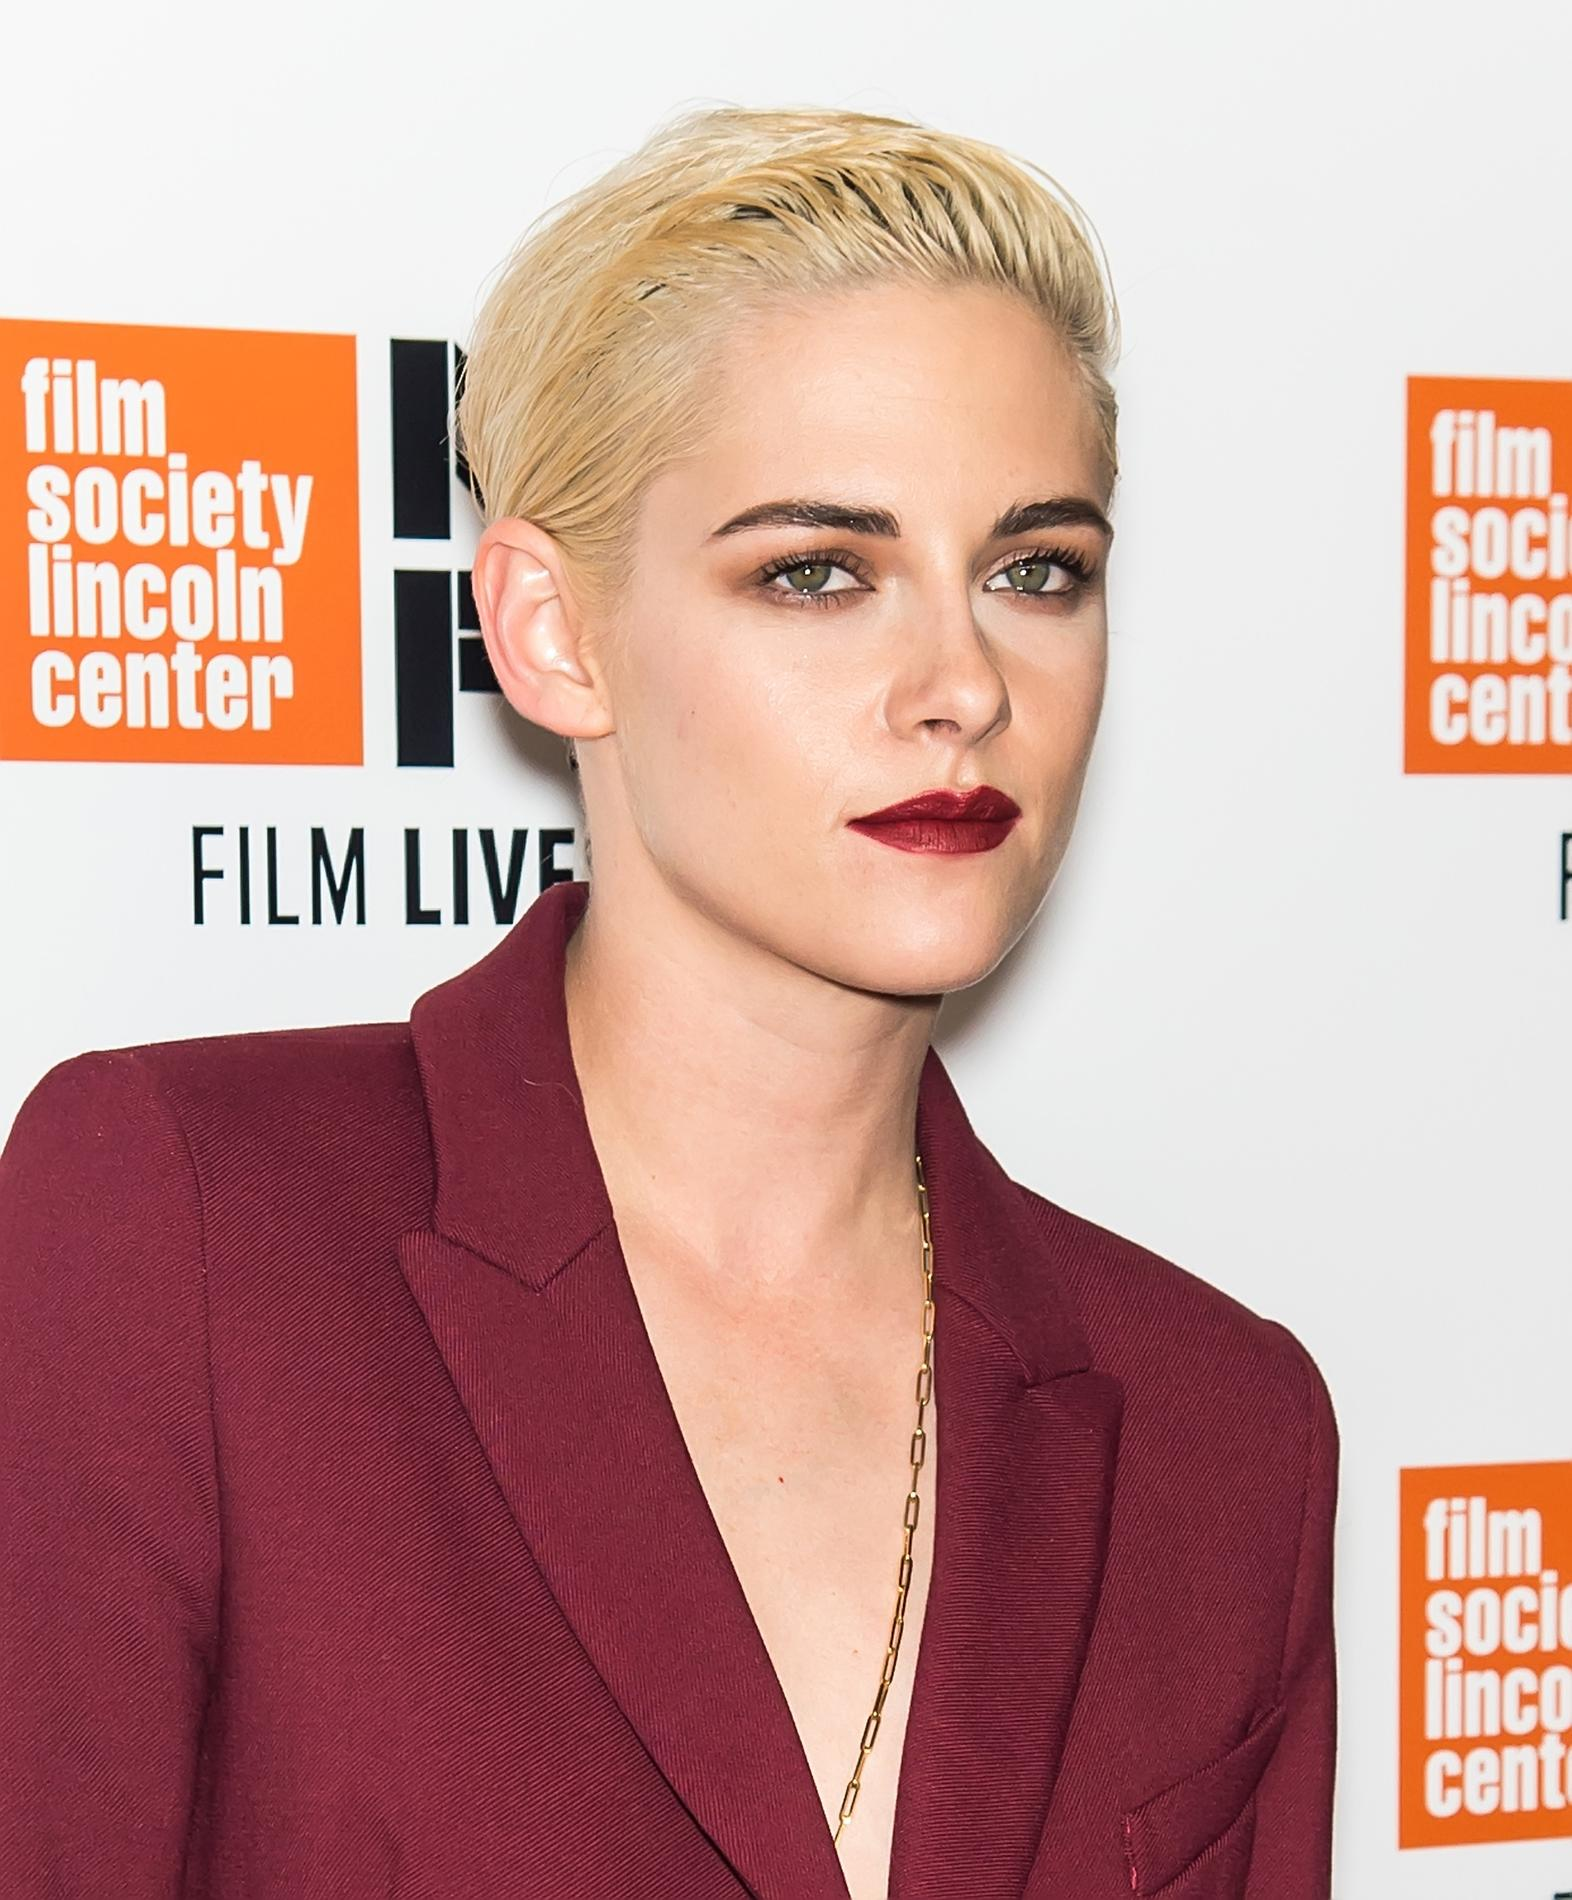 Coupe de cheveux katy perry 2016 for Coupe de cheveux stars 2016